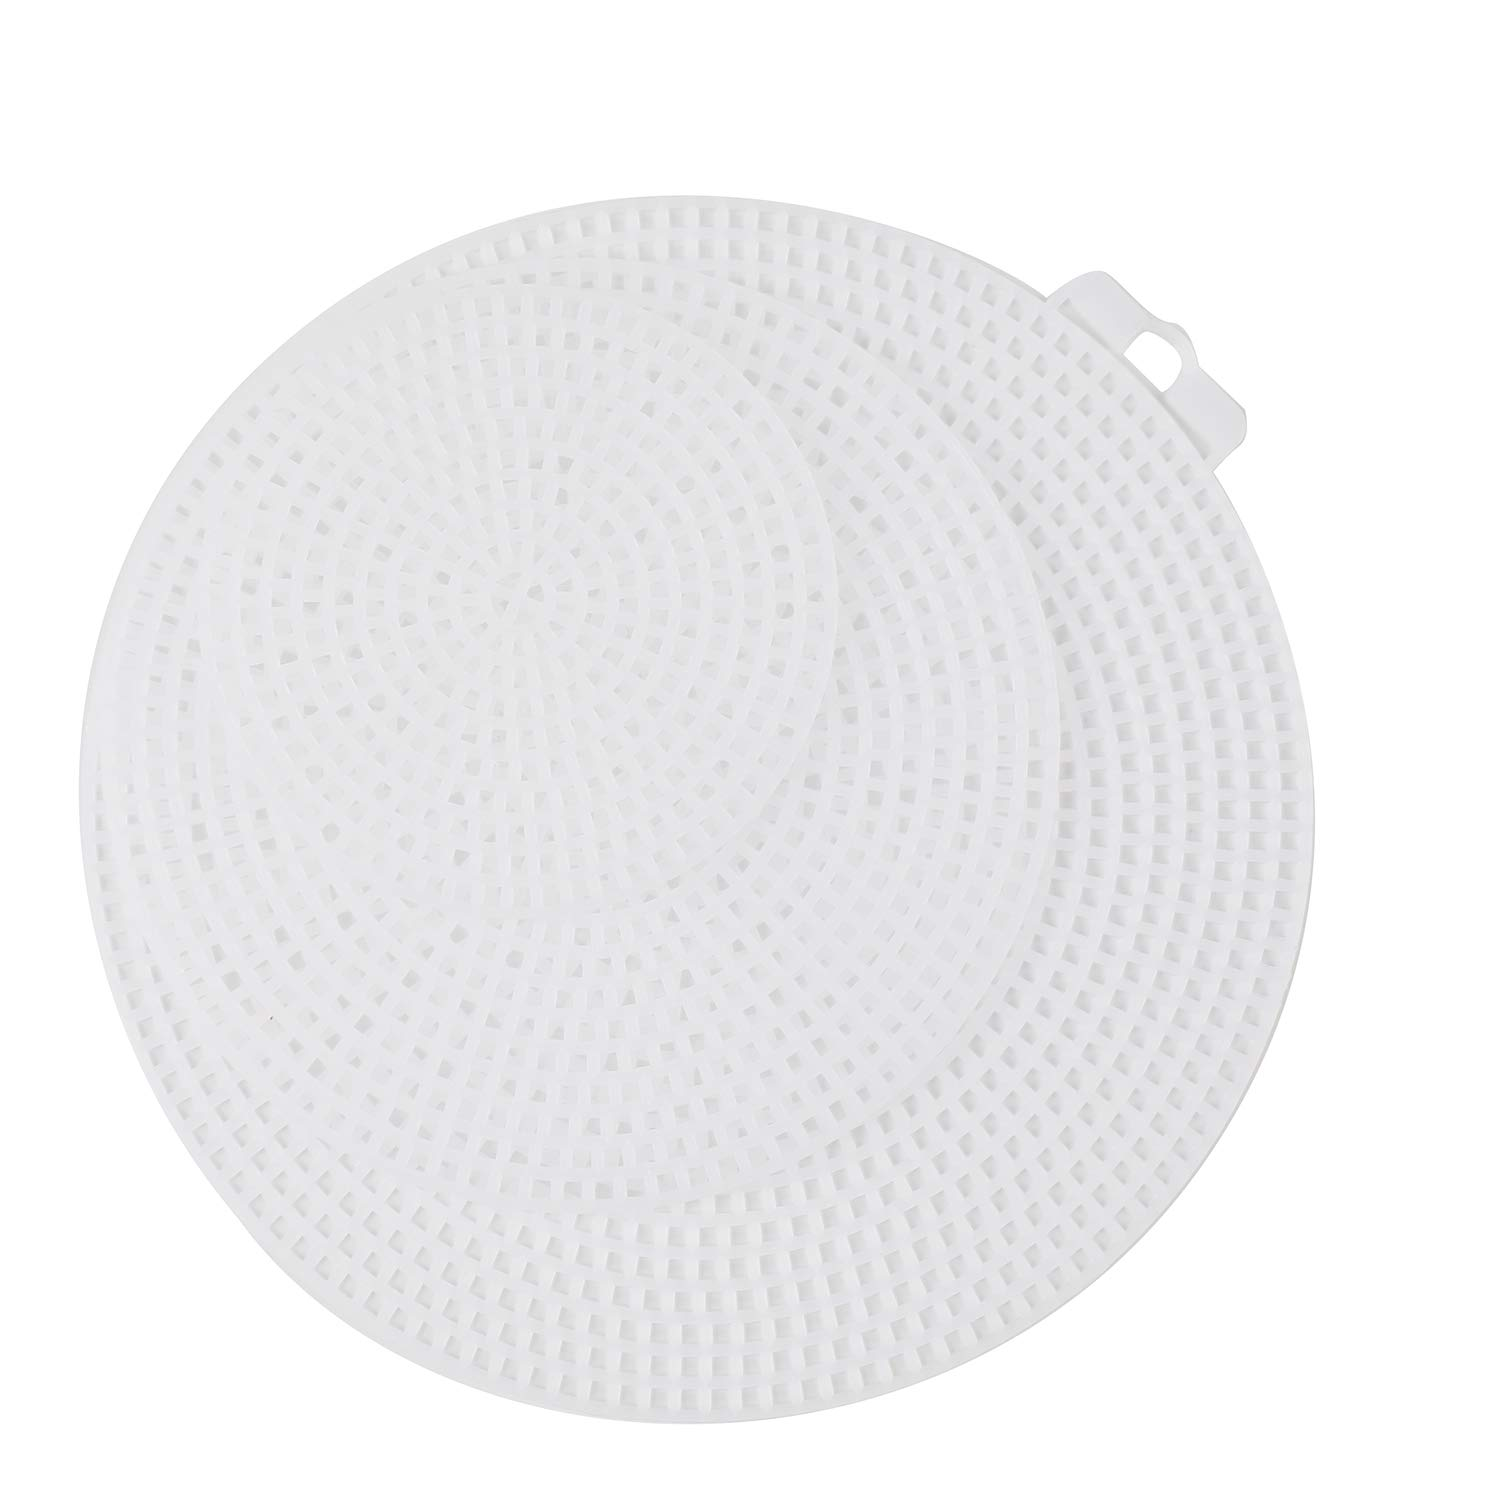 4.5 Inches Tosnail 60 Pack 3 Inches 5.75 Inches Clear Plastic Canvas Mesh Sheets for Embroidery Crafting